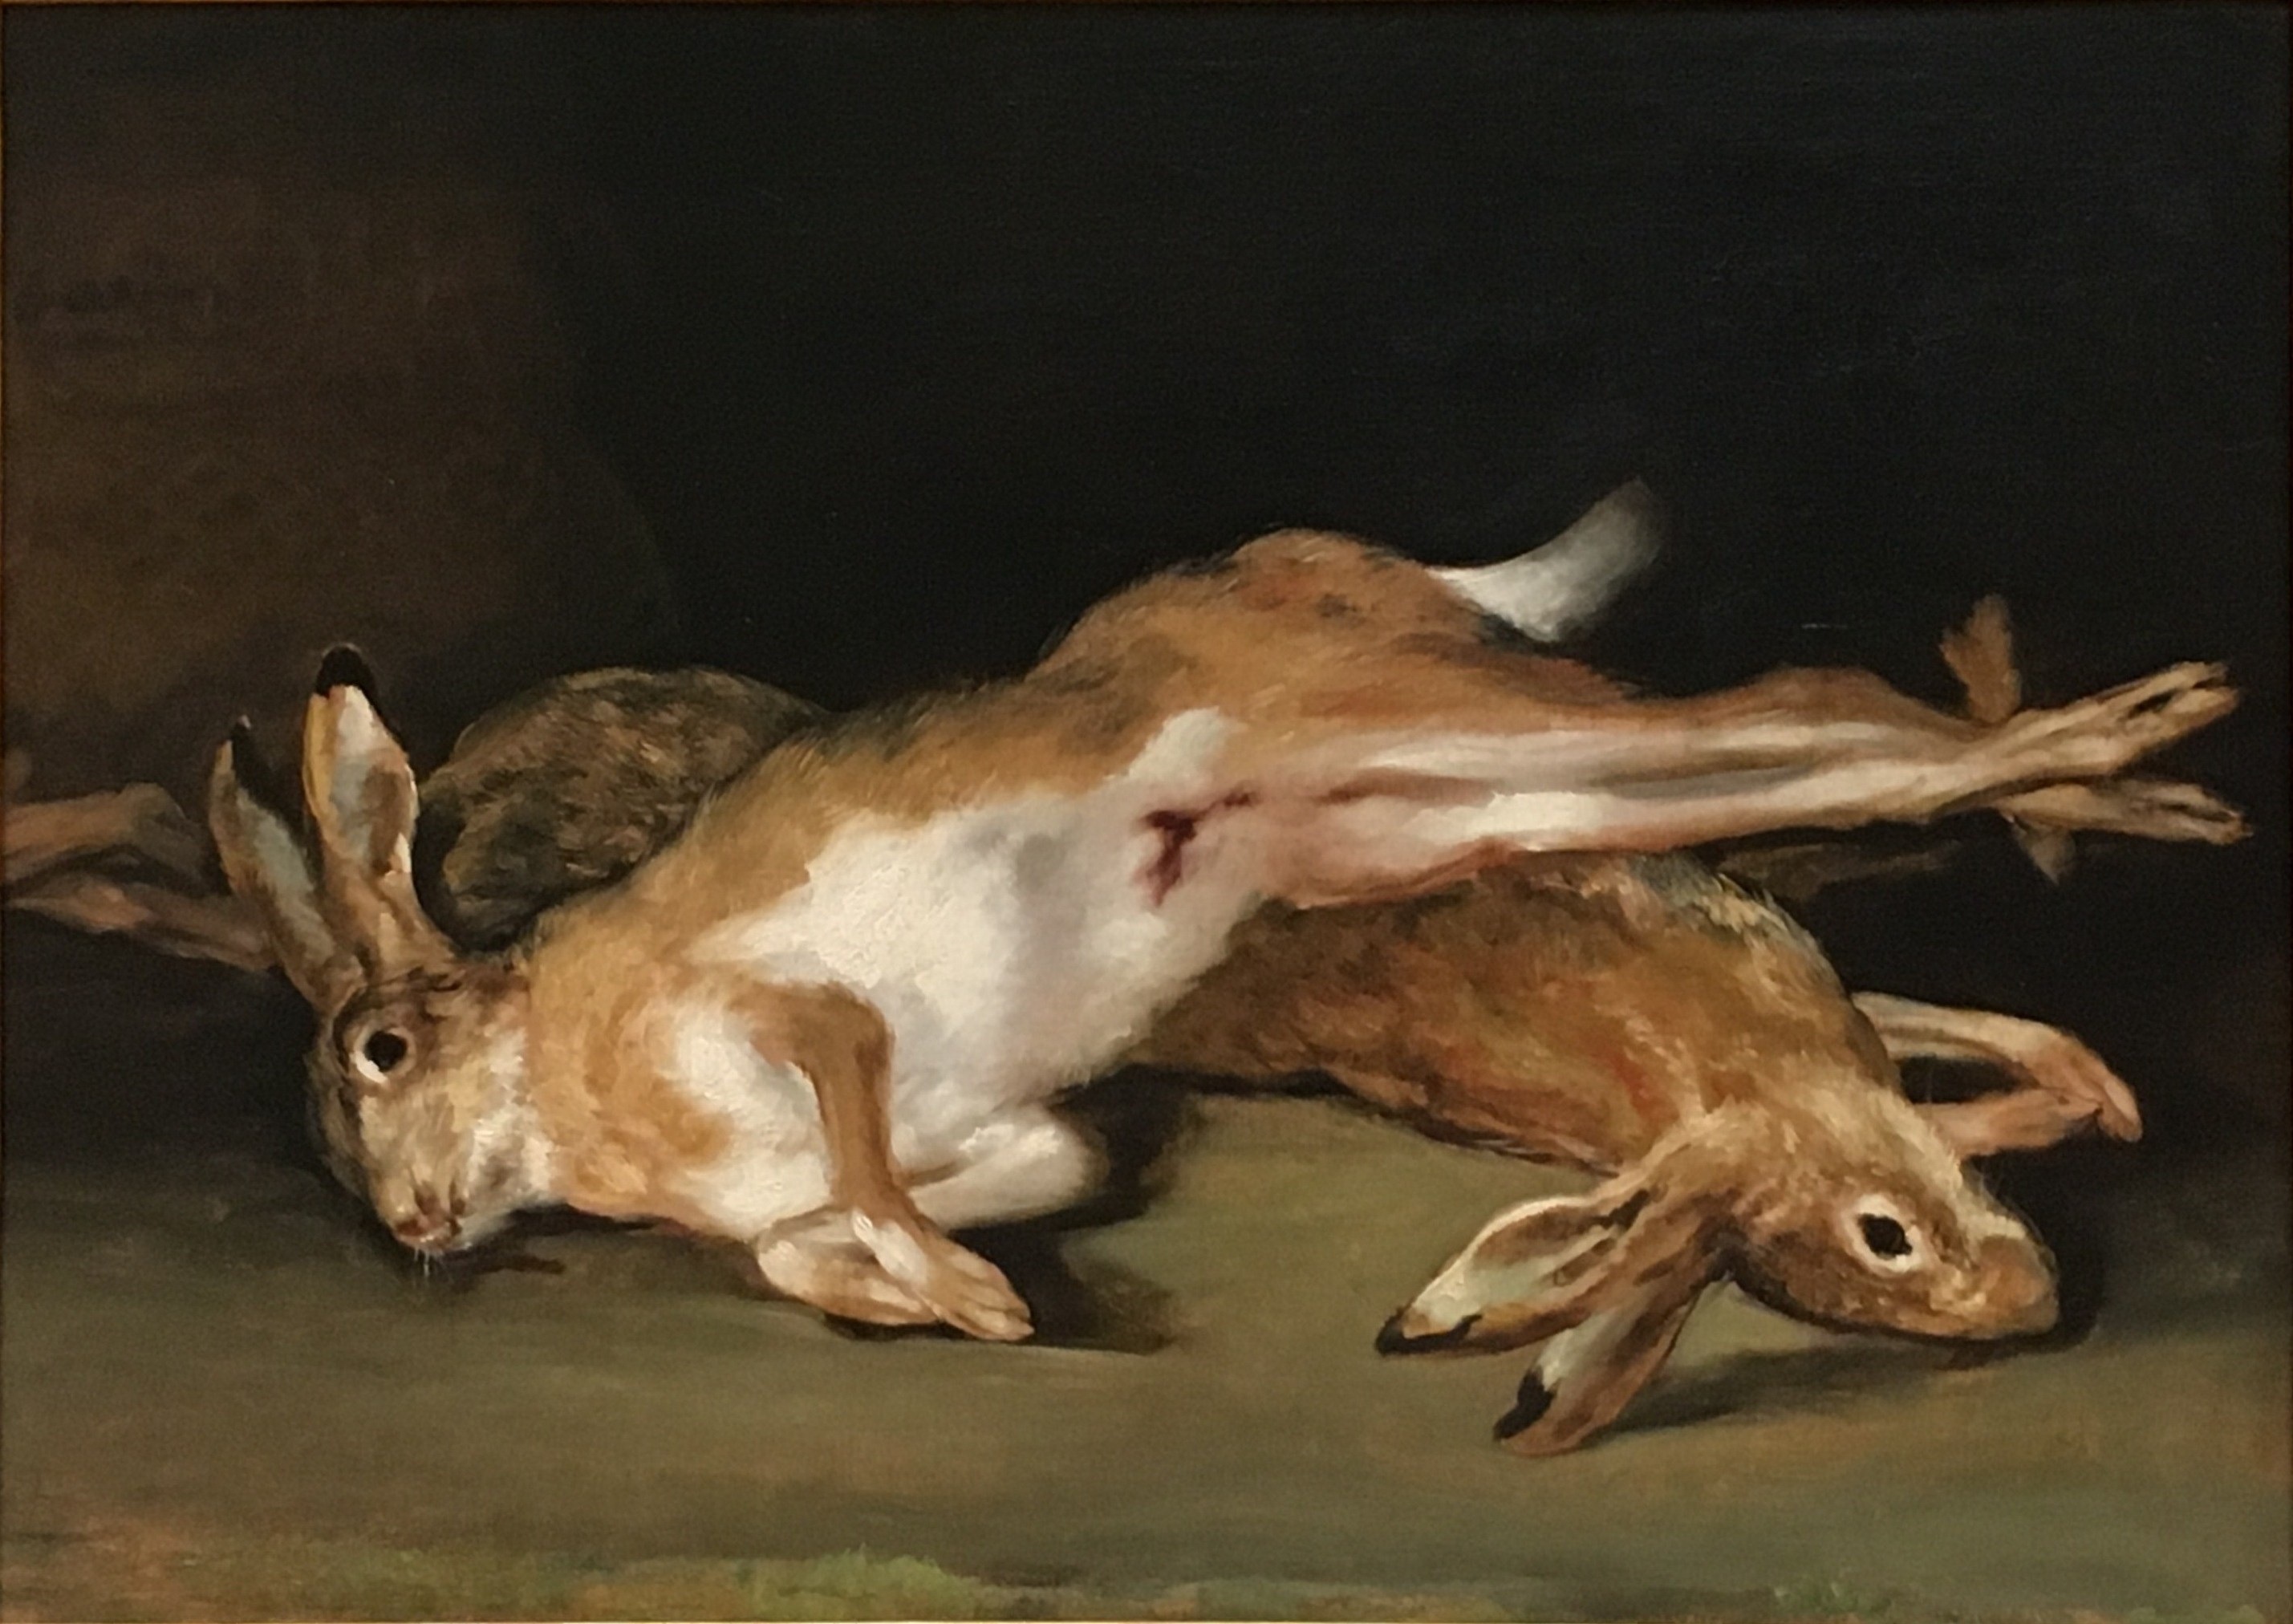 Goya Pinturas Negras Francisco Goya Quotstill Life With Dead Hares 39 Oil On